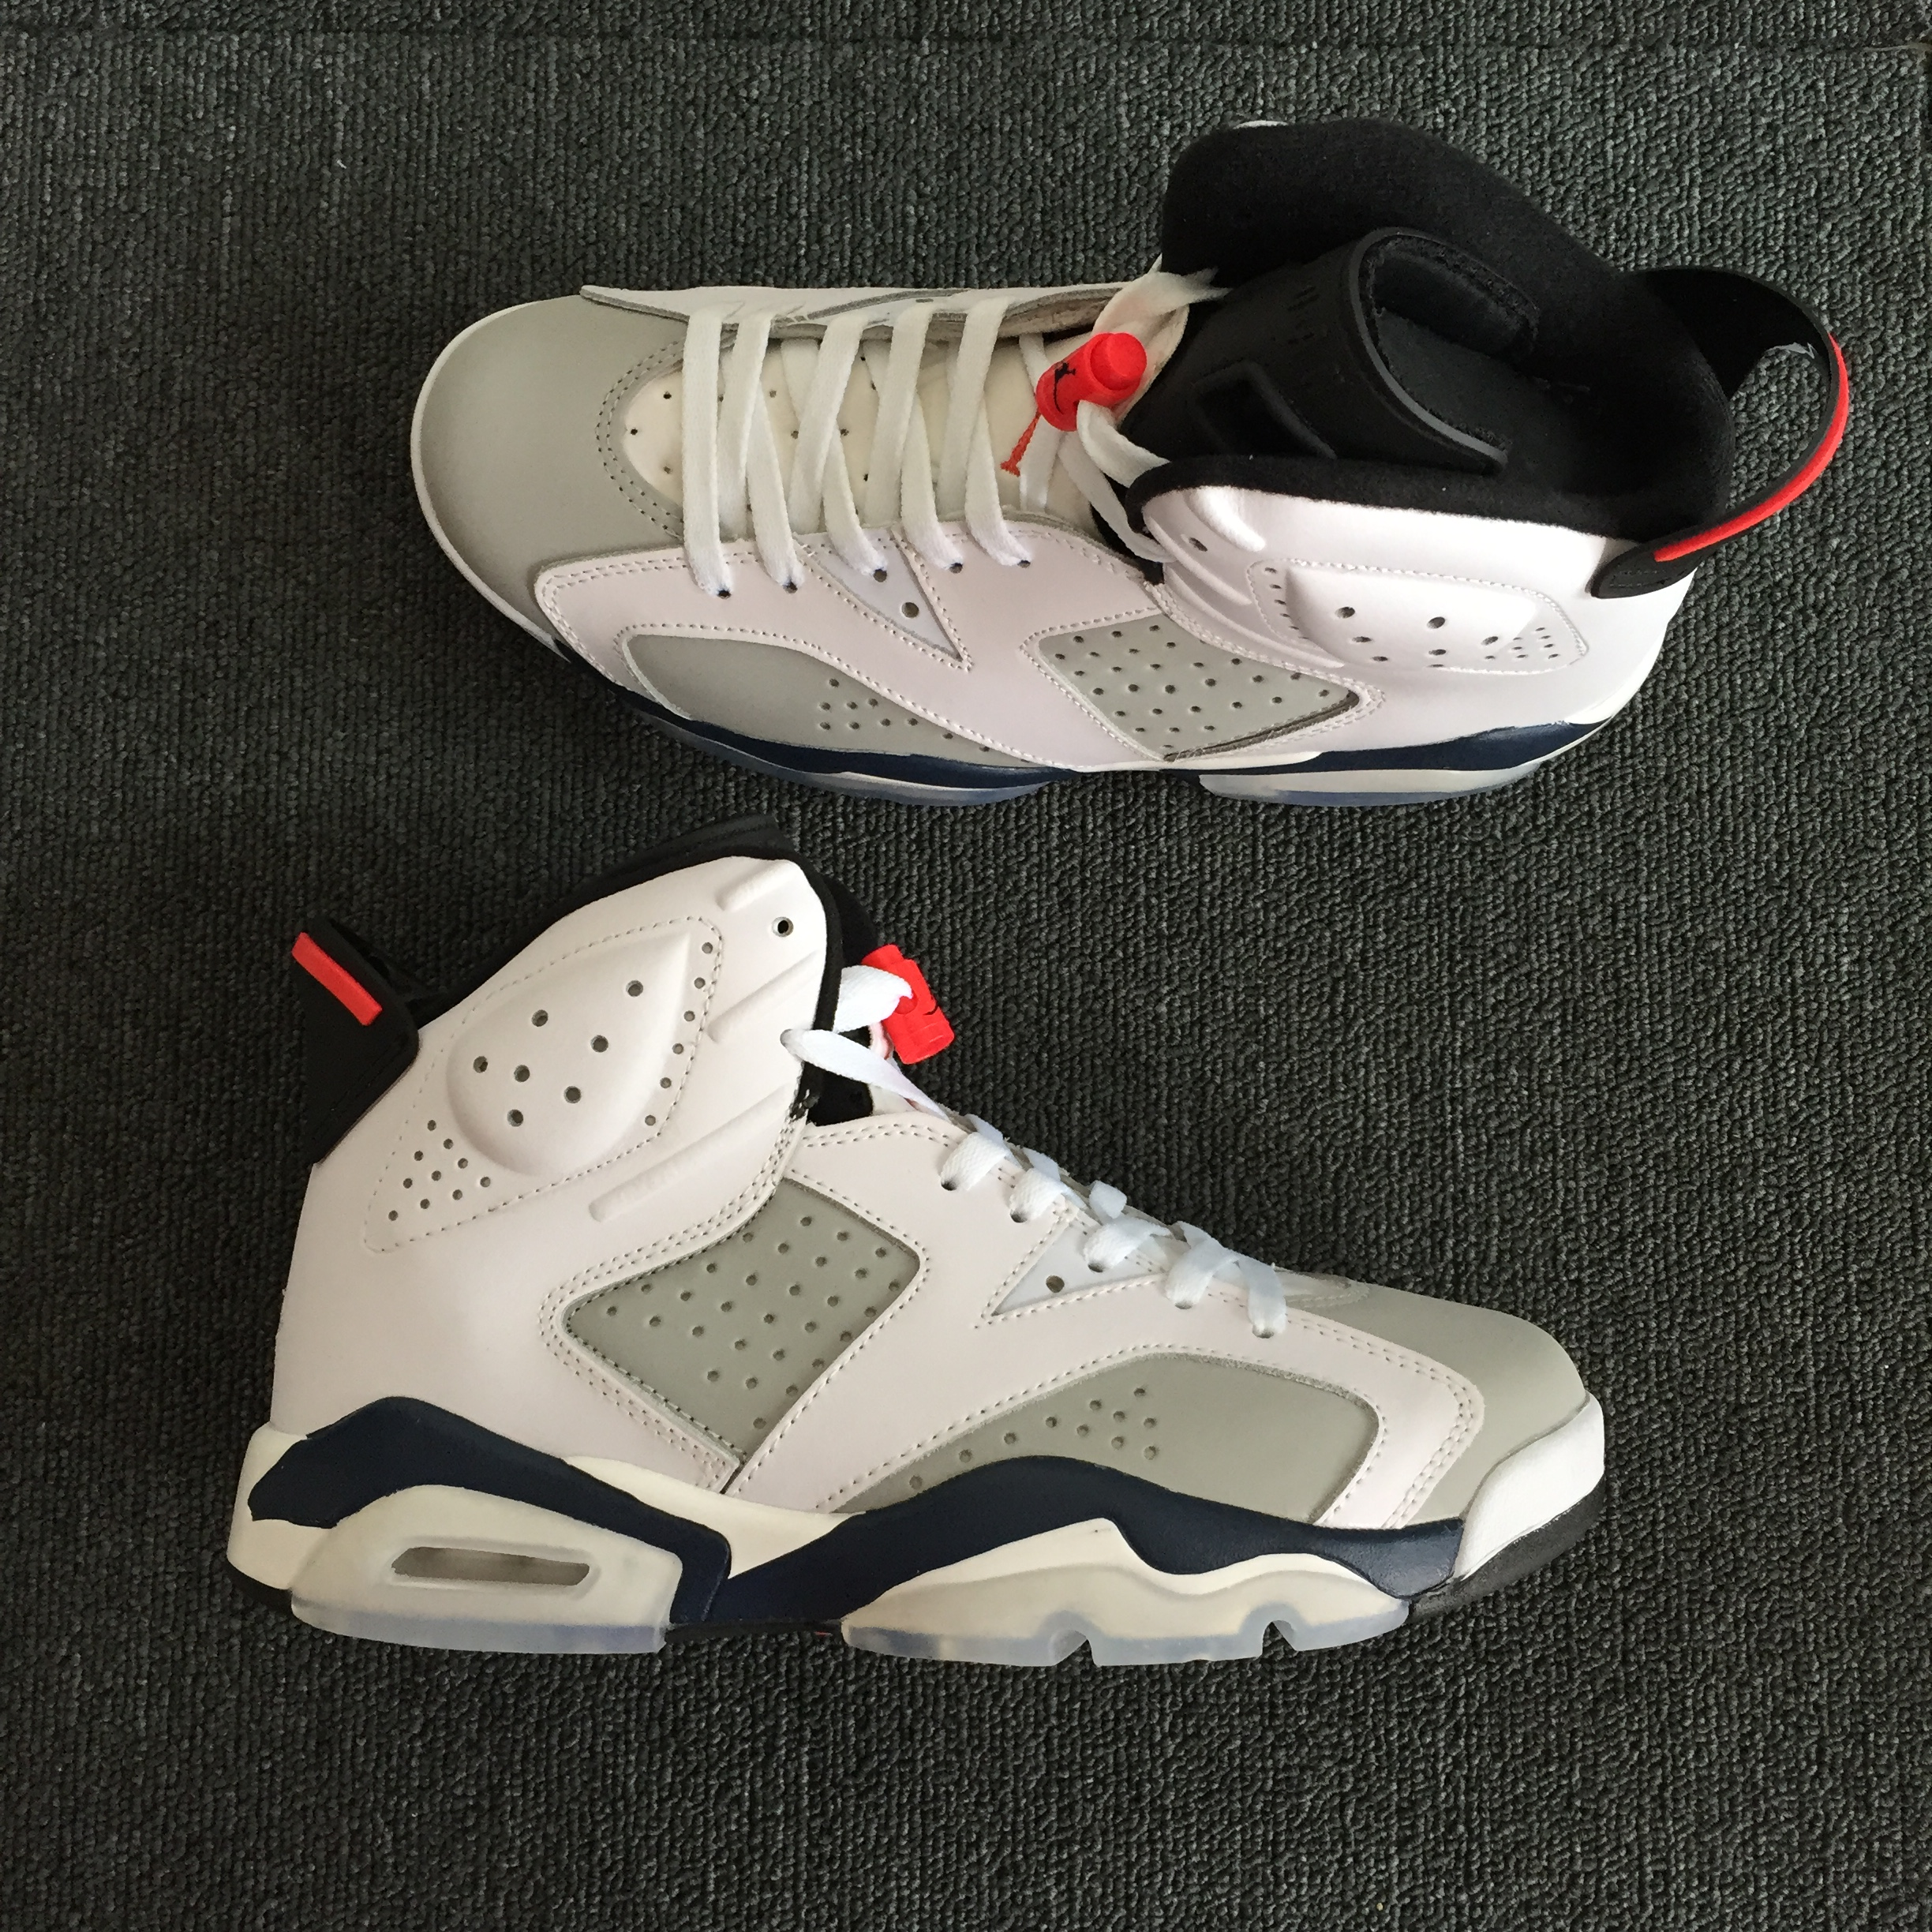 Air Jordan 6 Tinker White Grey Black Red Shoes - Click Image to Close